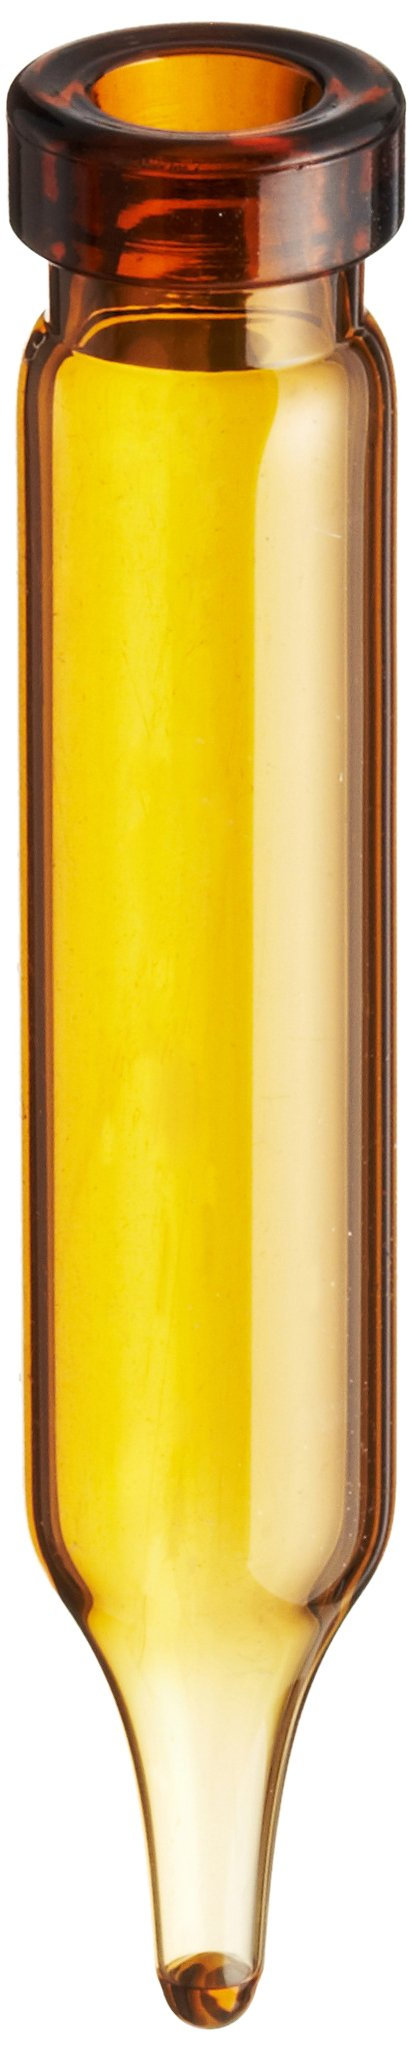 National Scientific Amber Glass Crimp Top Vial Conical Base, Capacity 450µL, 7mm D x 40mm H (Case of 1000)